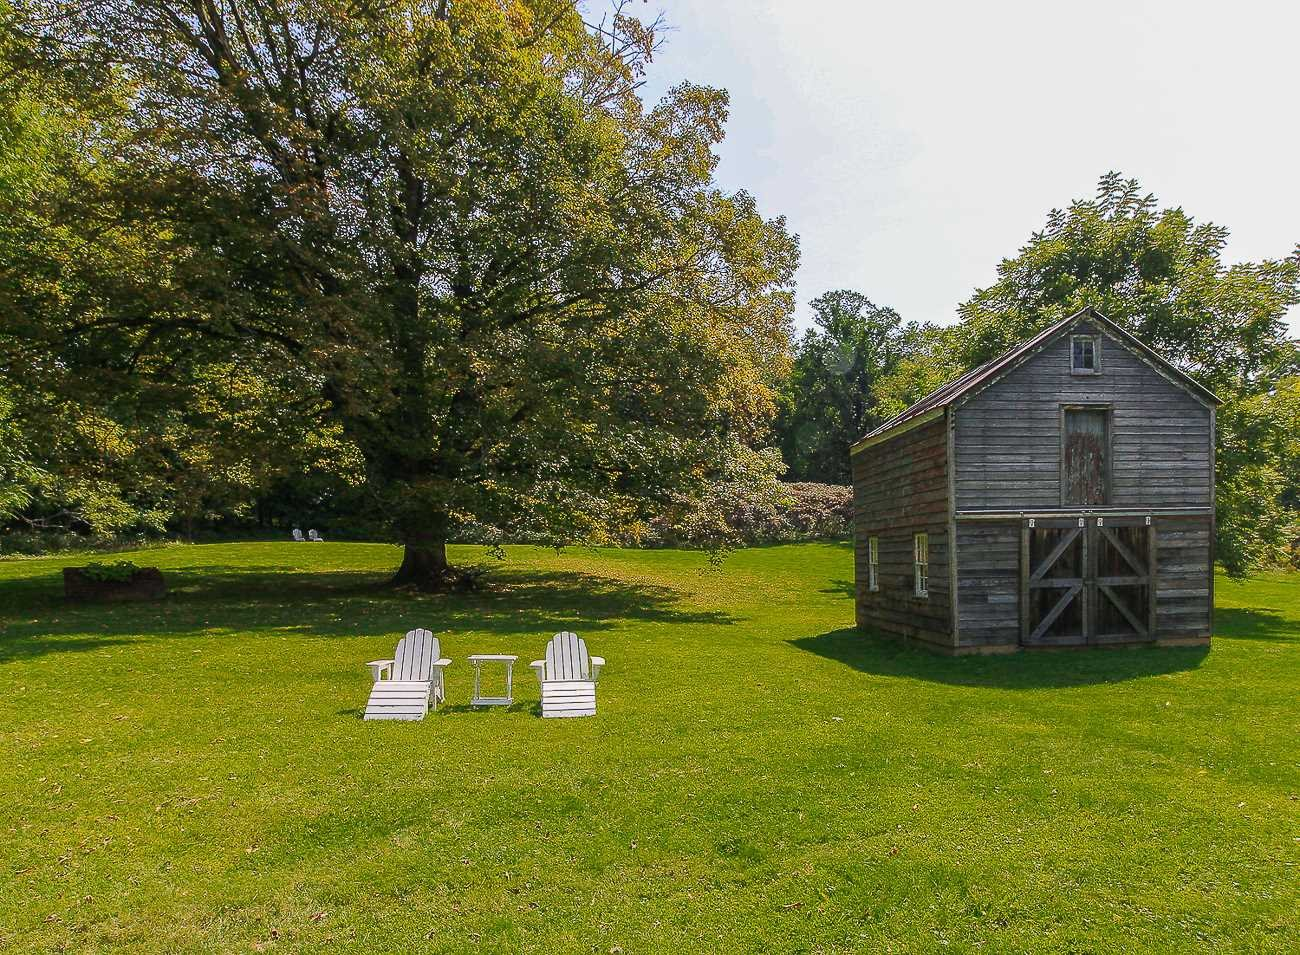 Additional photo for property listing at 153 COUNTY ROUTE 19 153 COUNTY ROUTE 19 Livingston, New York 12534 United States